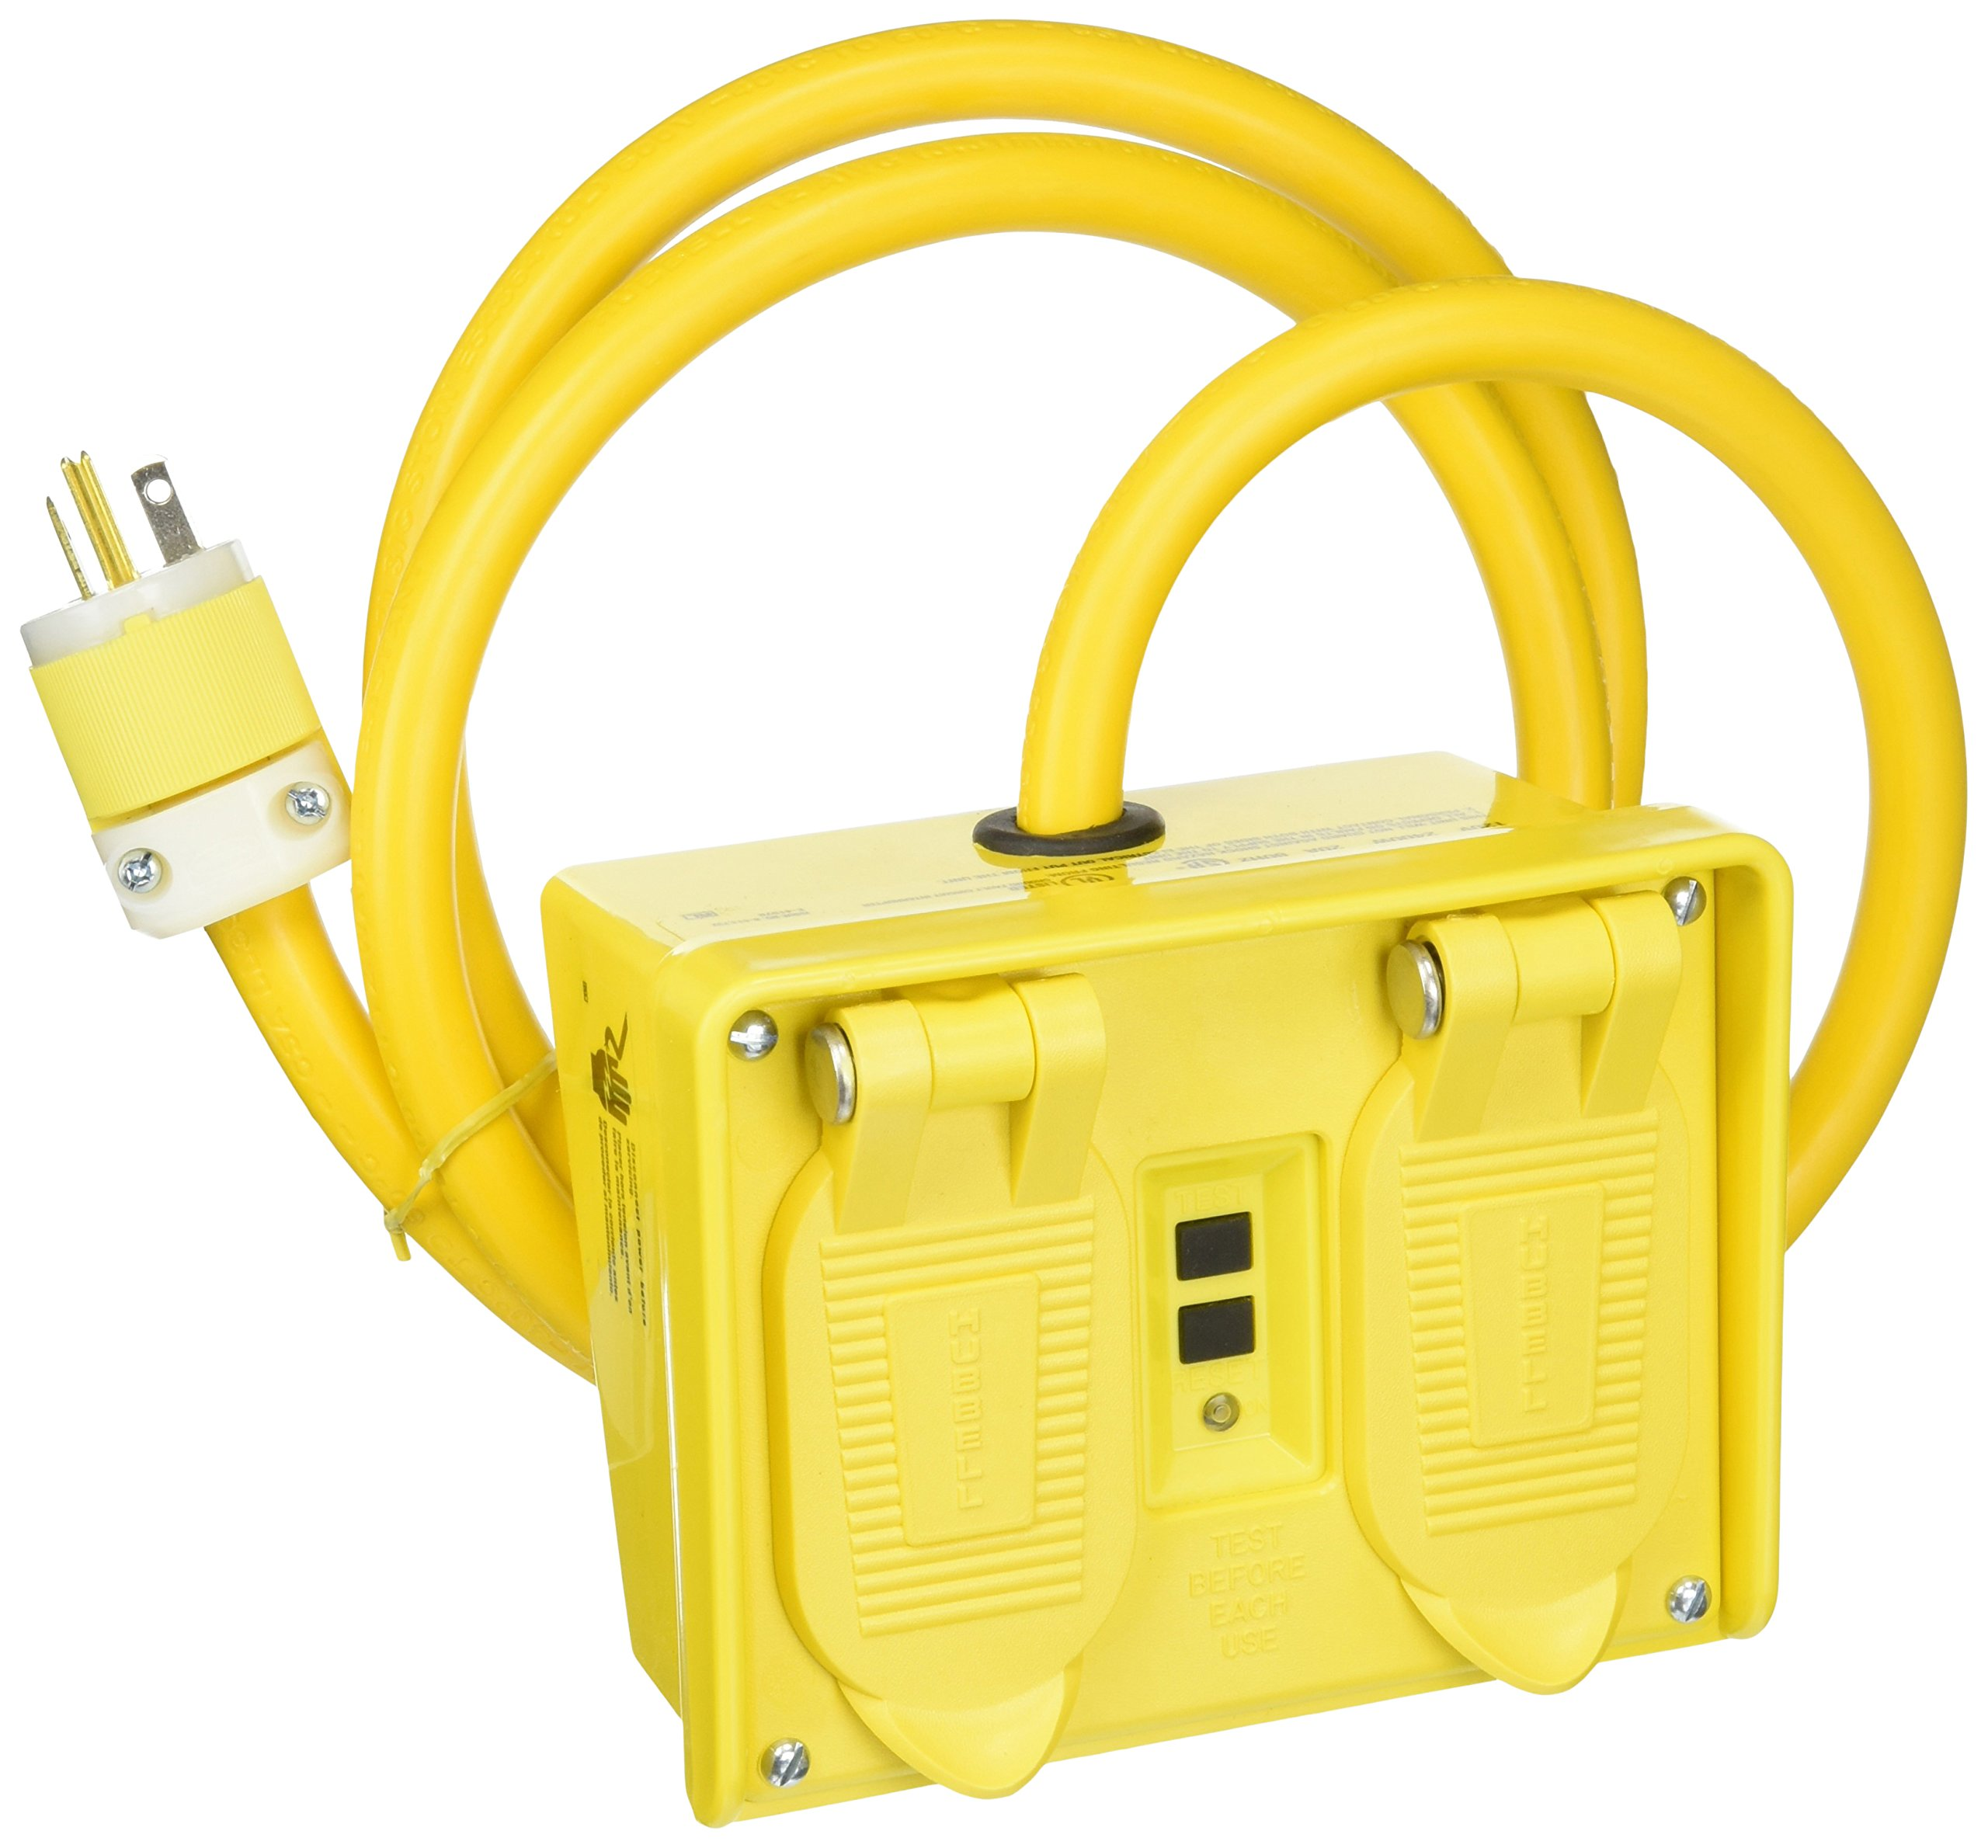 Hubbell GFP20M Port GFCI, 4 Outlet, 20 amp, 120V, Yellow by Hubbell